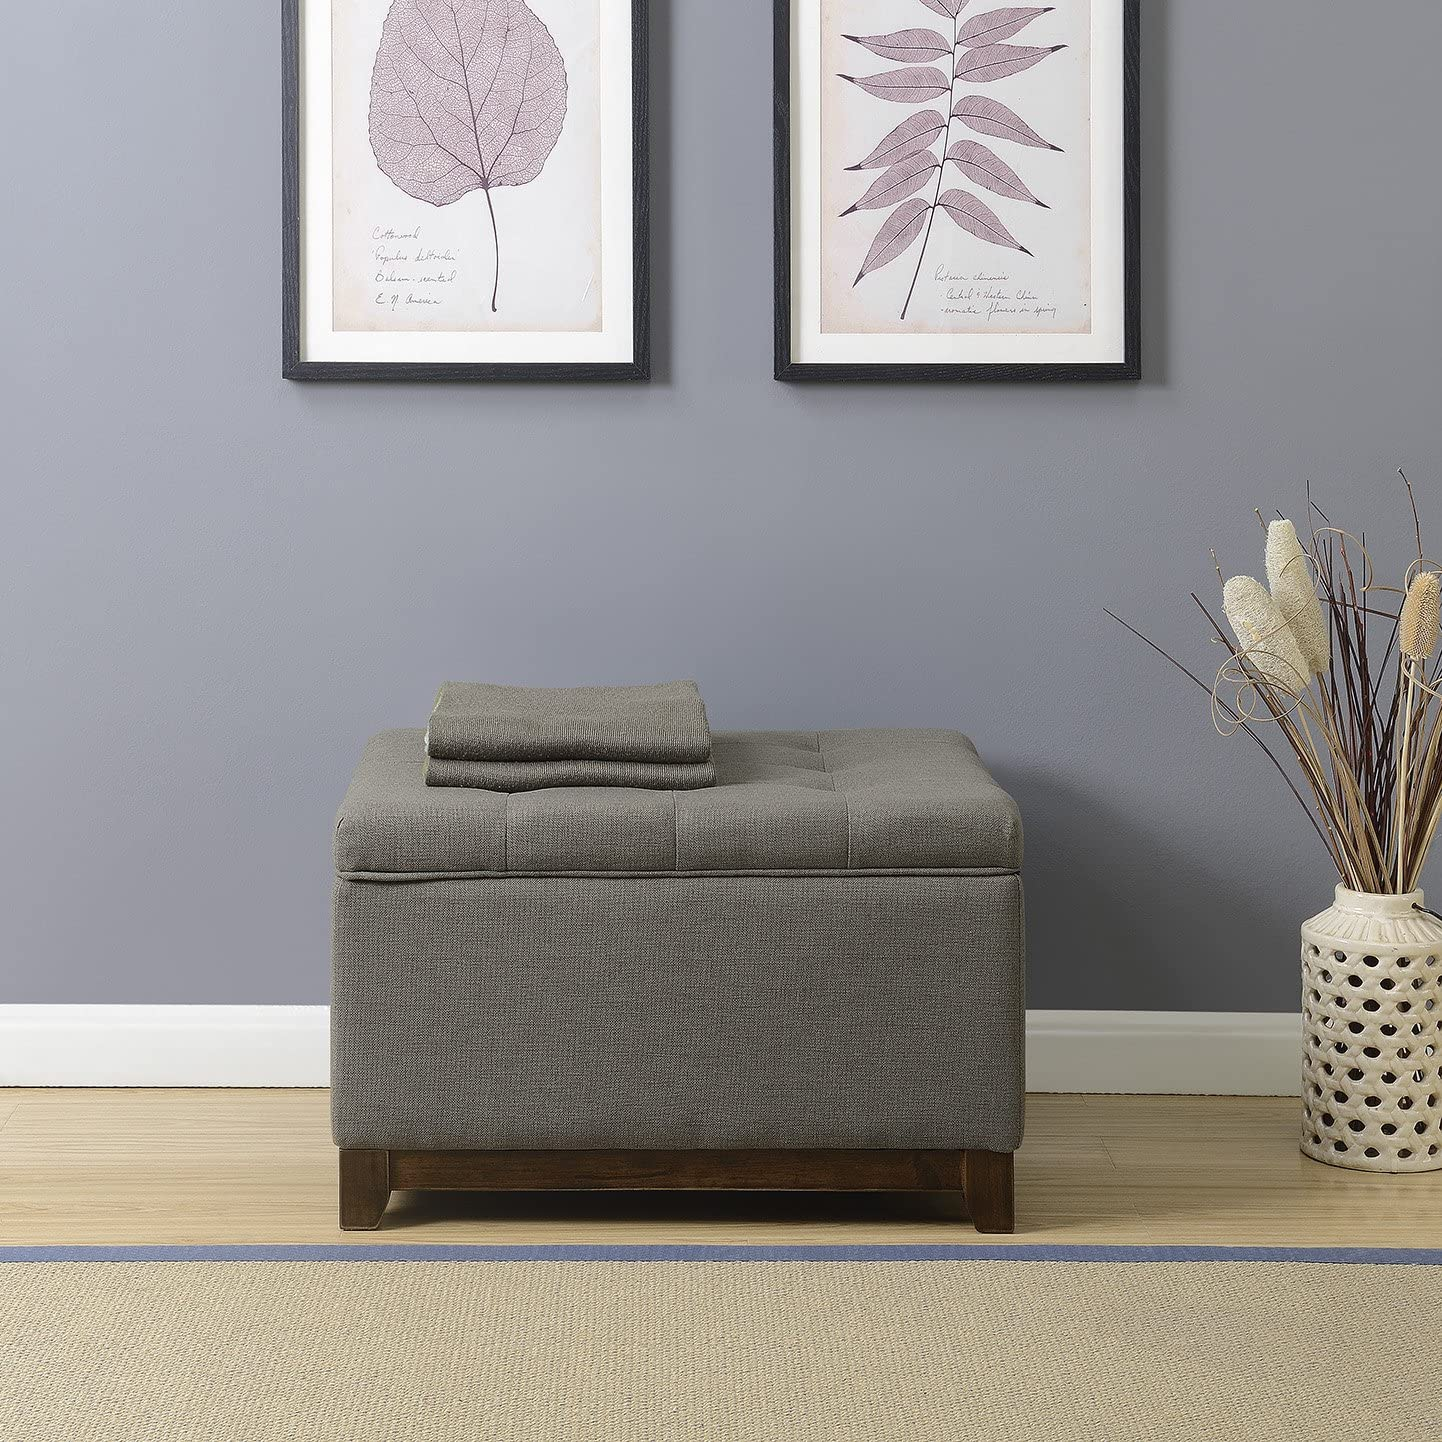 BELLEZE Storage Ottoman Linen Bench Large Living Room Footrest Seat Tufted Footstool Charcoal Gray